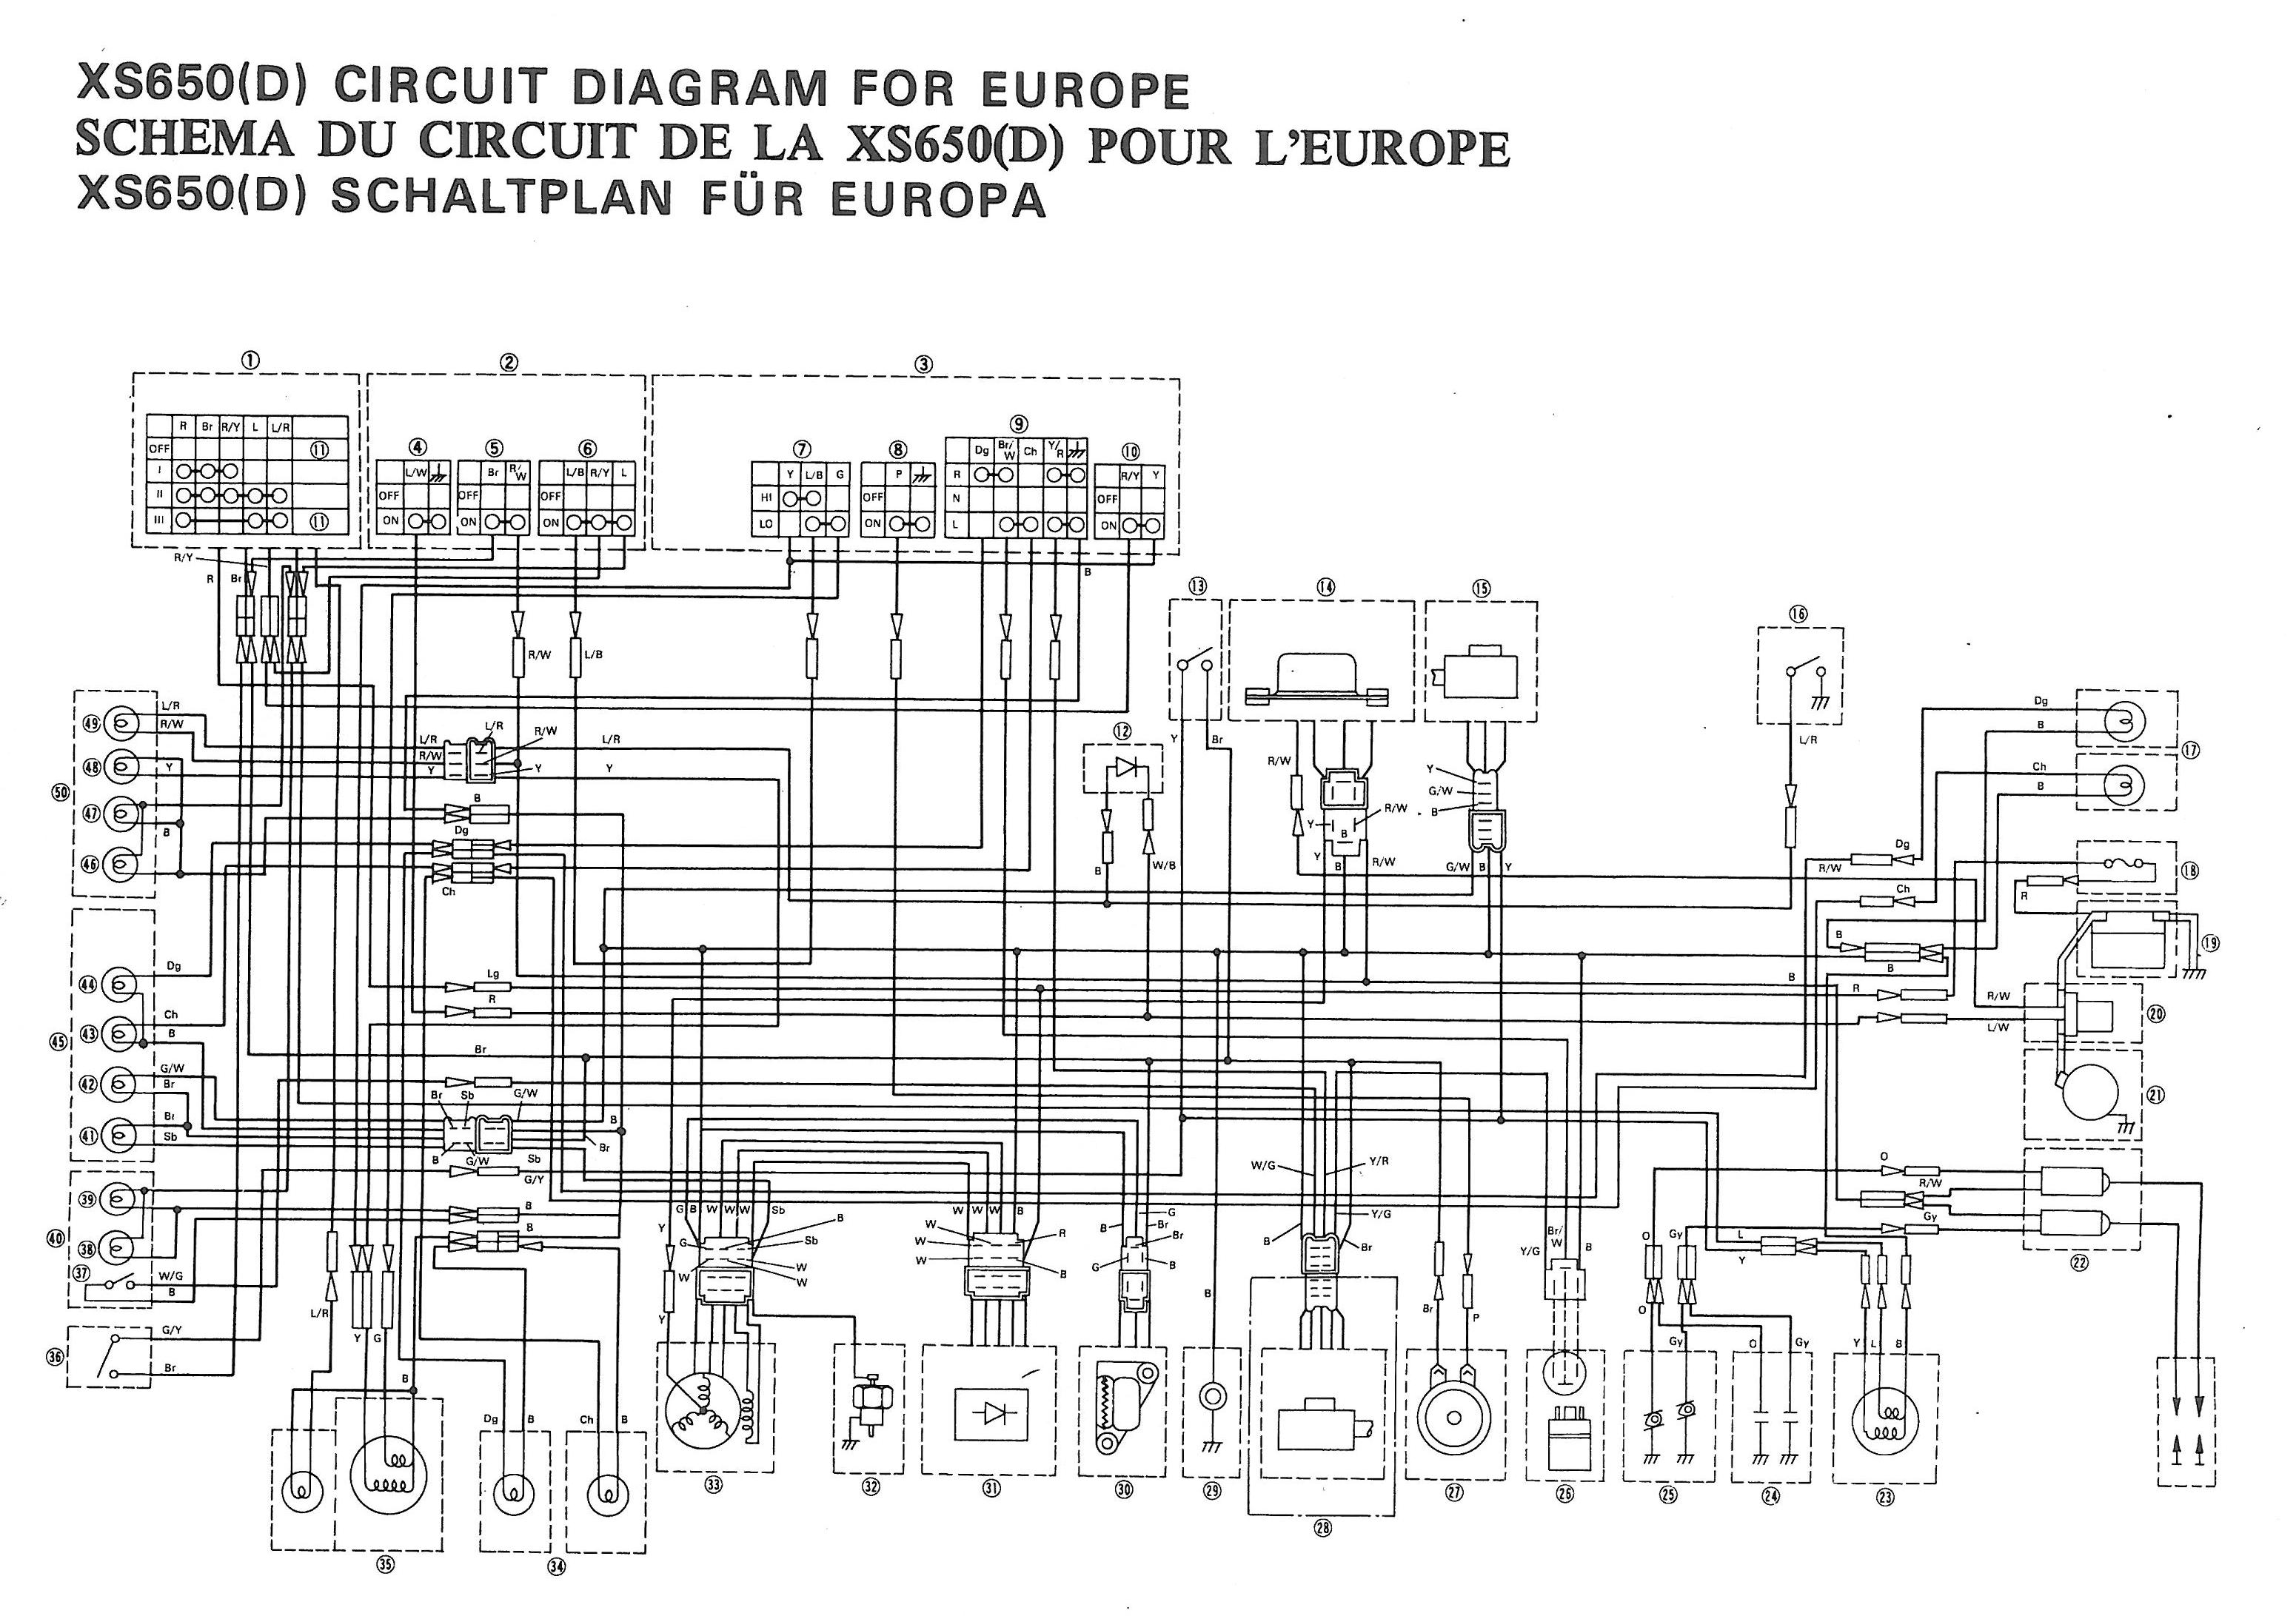 europe wiring diagrams schematic wiring diagrams \u2022 single pole switch wiring diagram xs650 77 xs d wiring diagram thexscafe rh thexscafedotcom wordpress com light switch wiring diagram european wiring diagram symbols